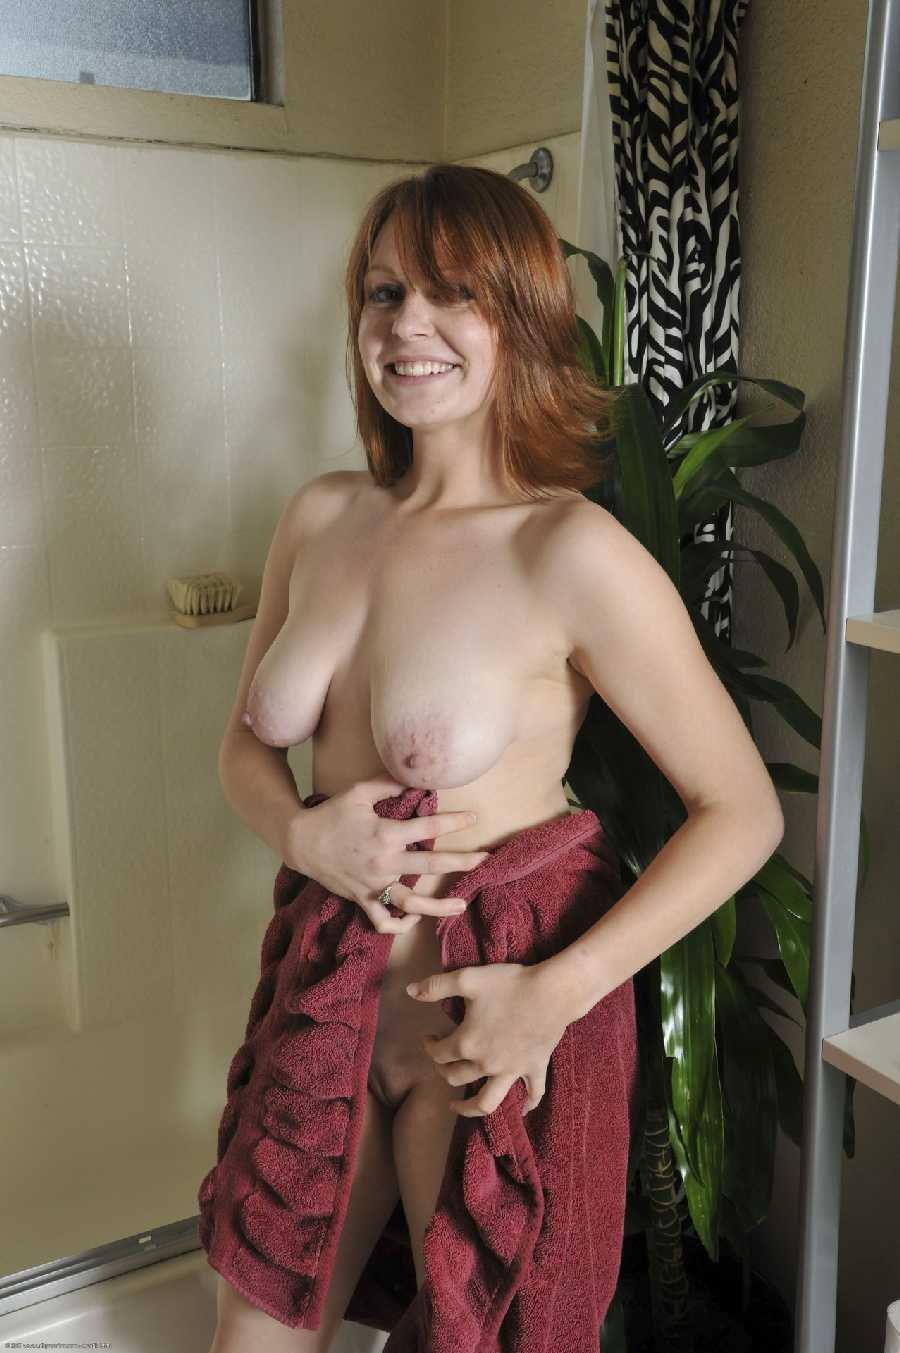 naked home pics - real girls naked